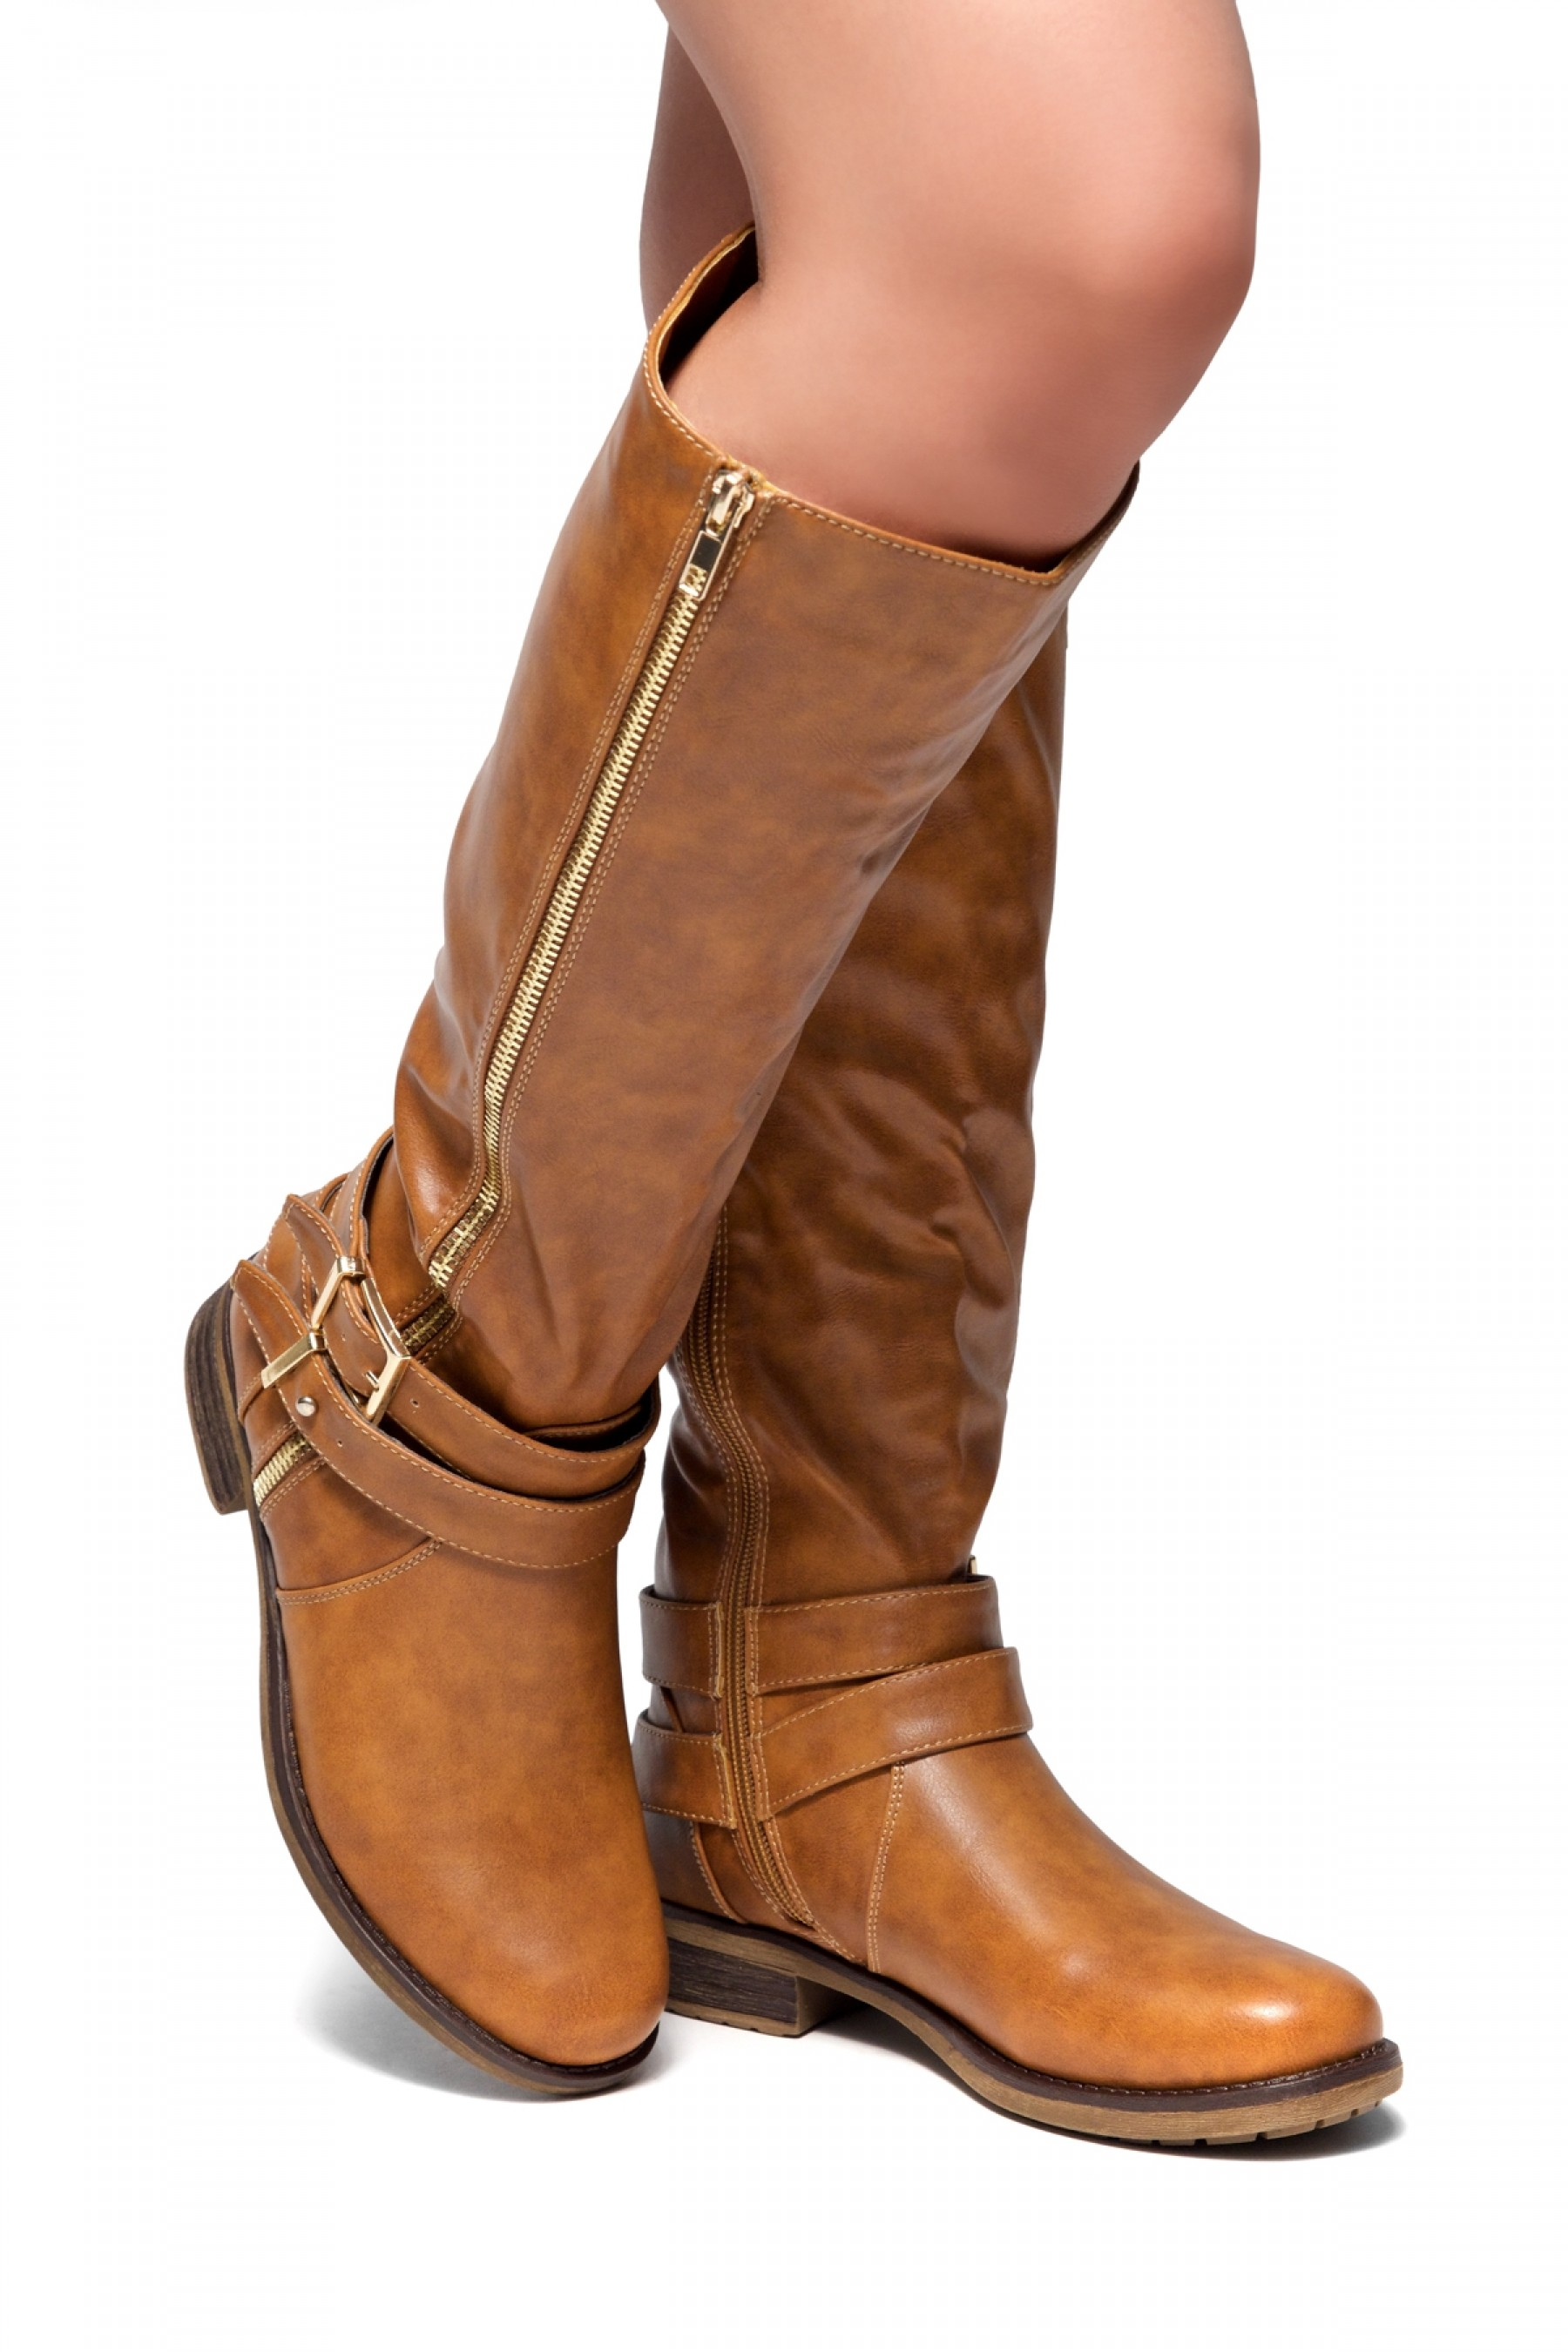 kayyllen detail knee boots most zipper buckled ankle cognac with comfortable comforter high herstyle strap double riding